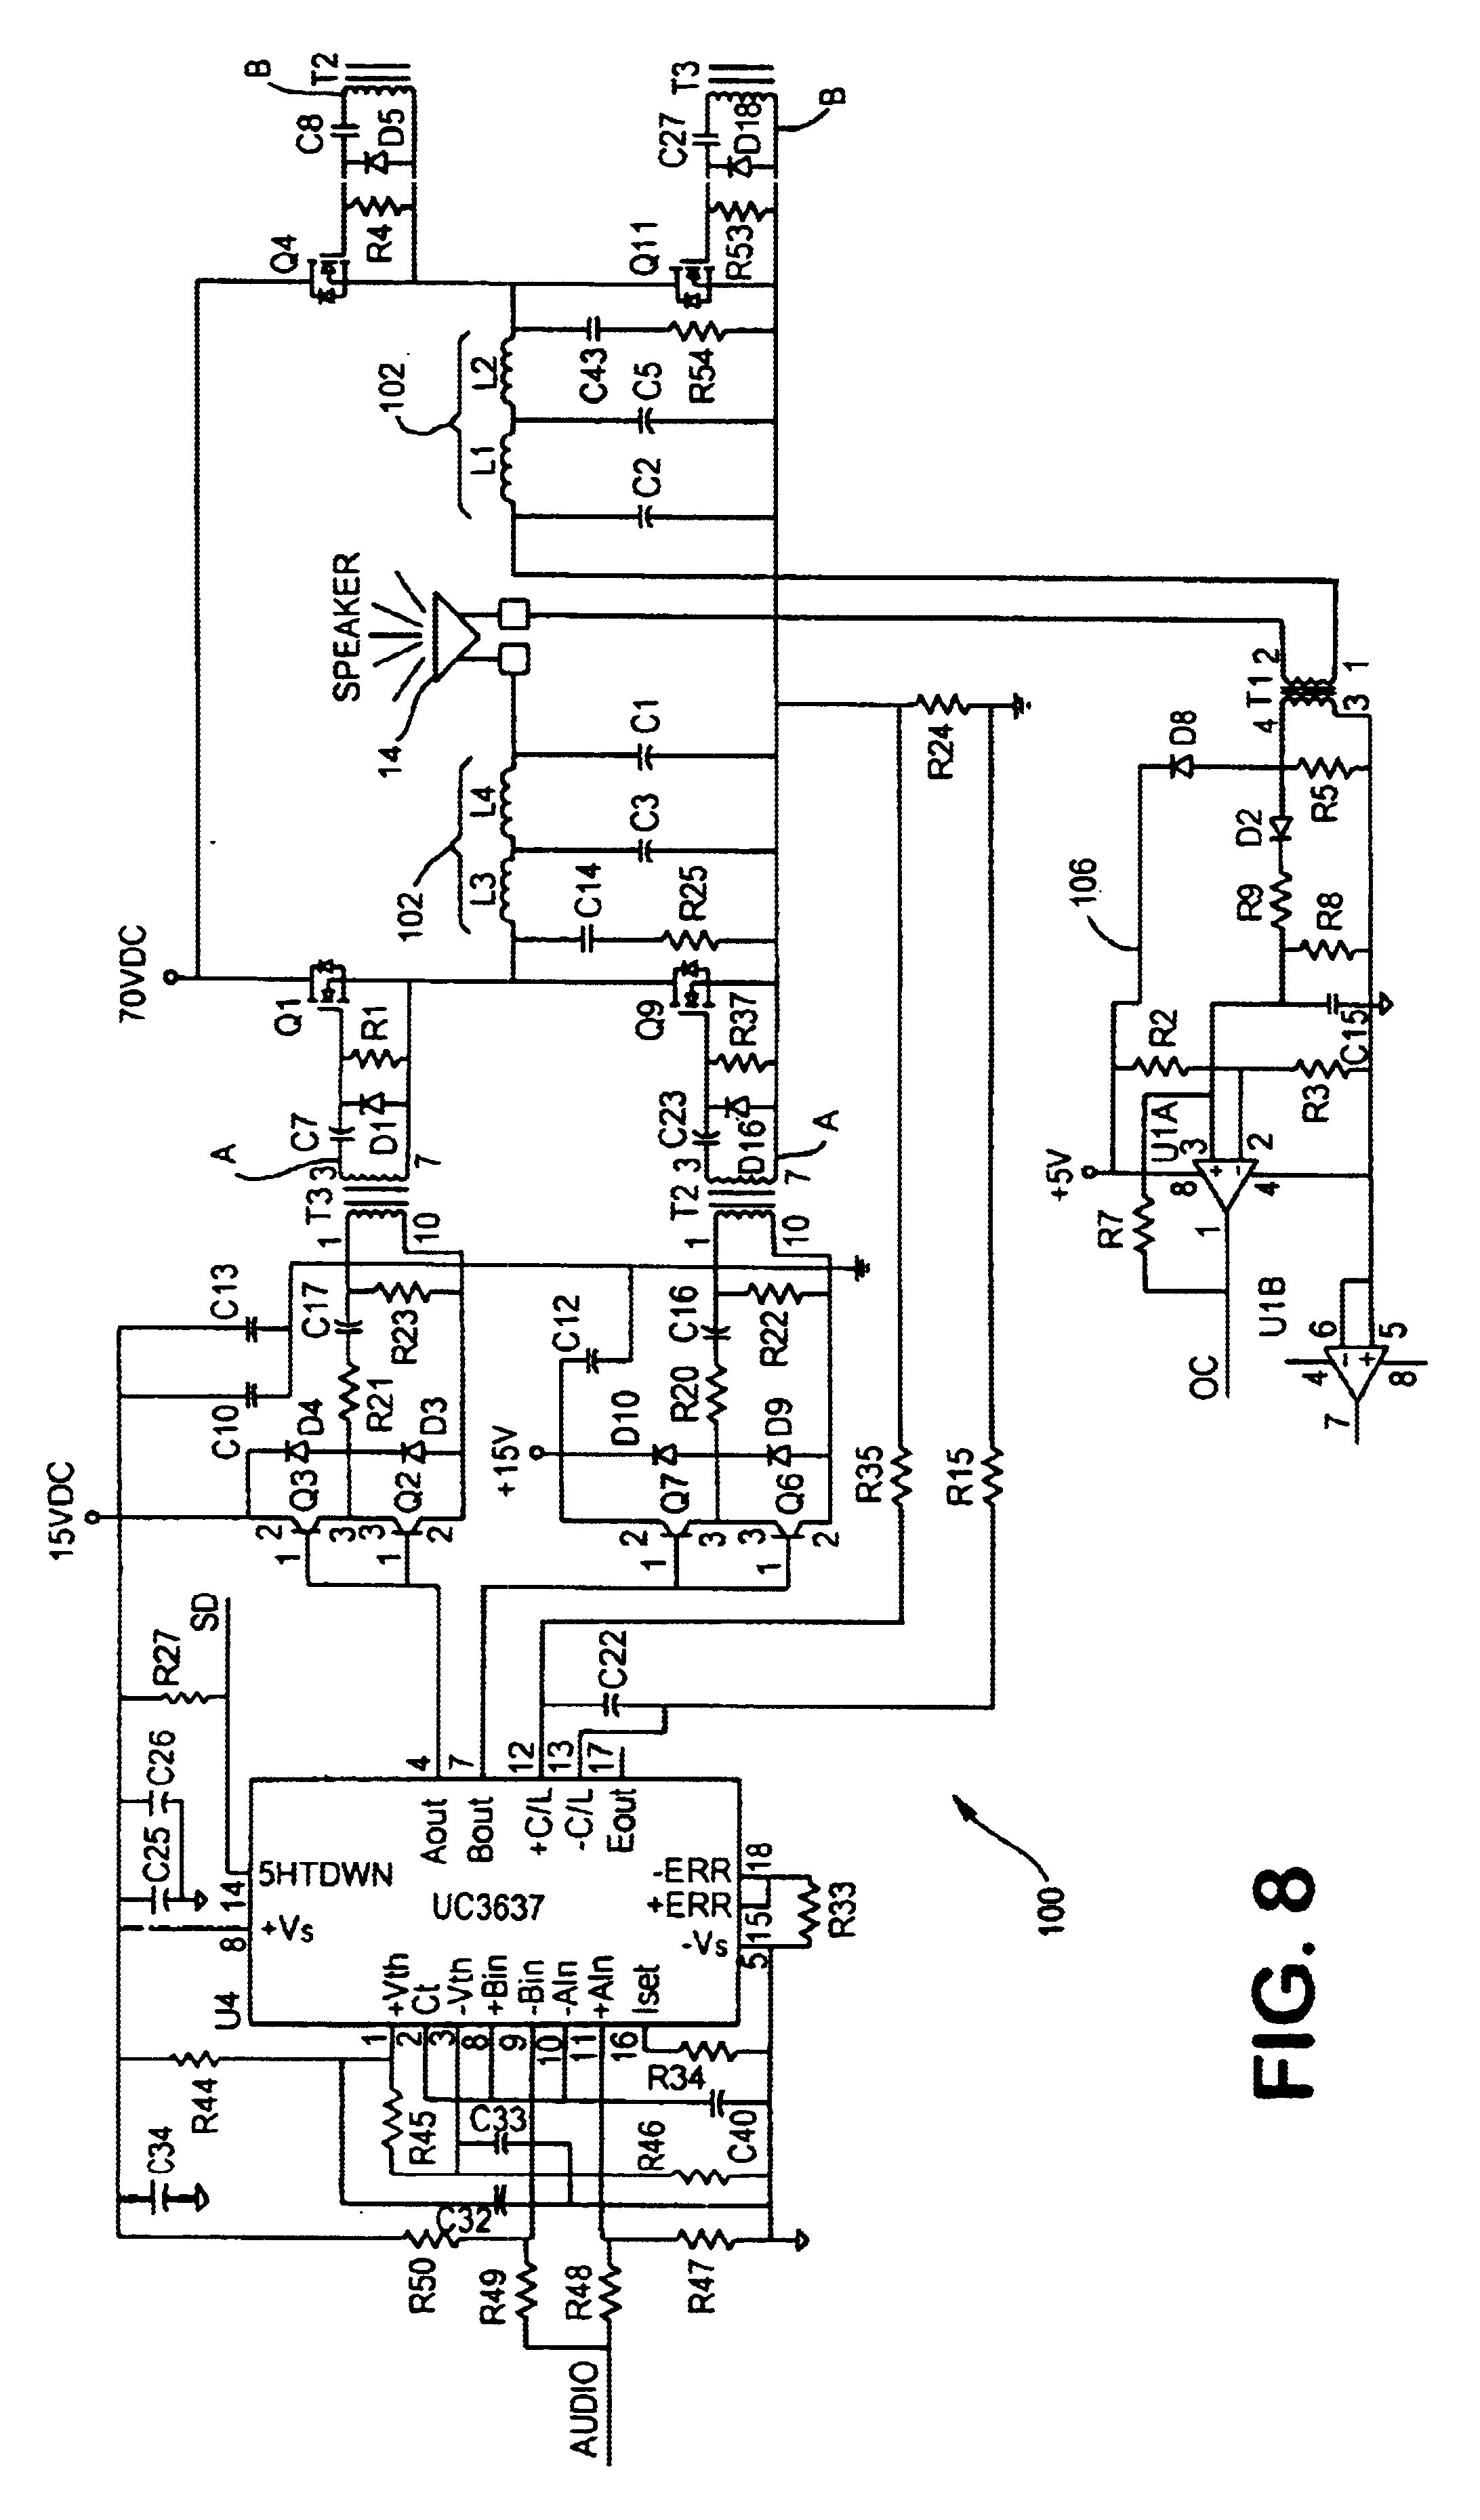 Alarm Siren Wire Diagram